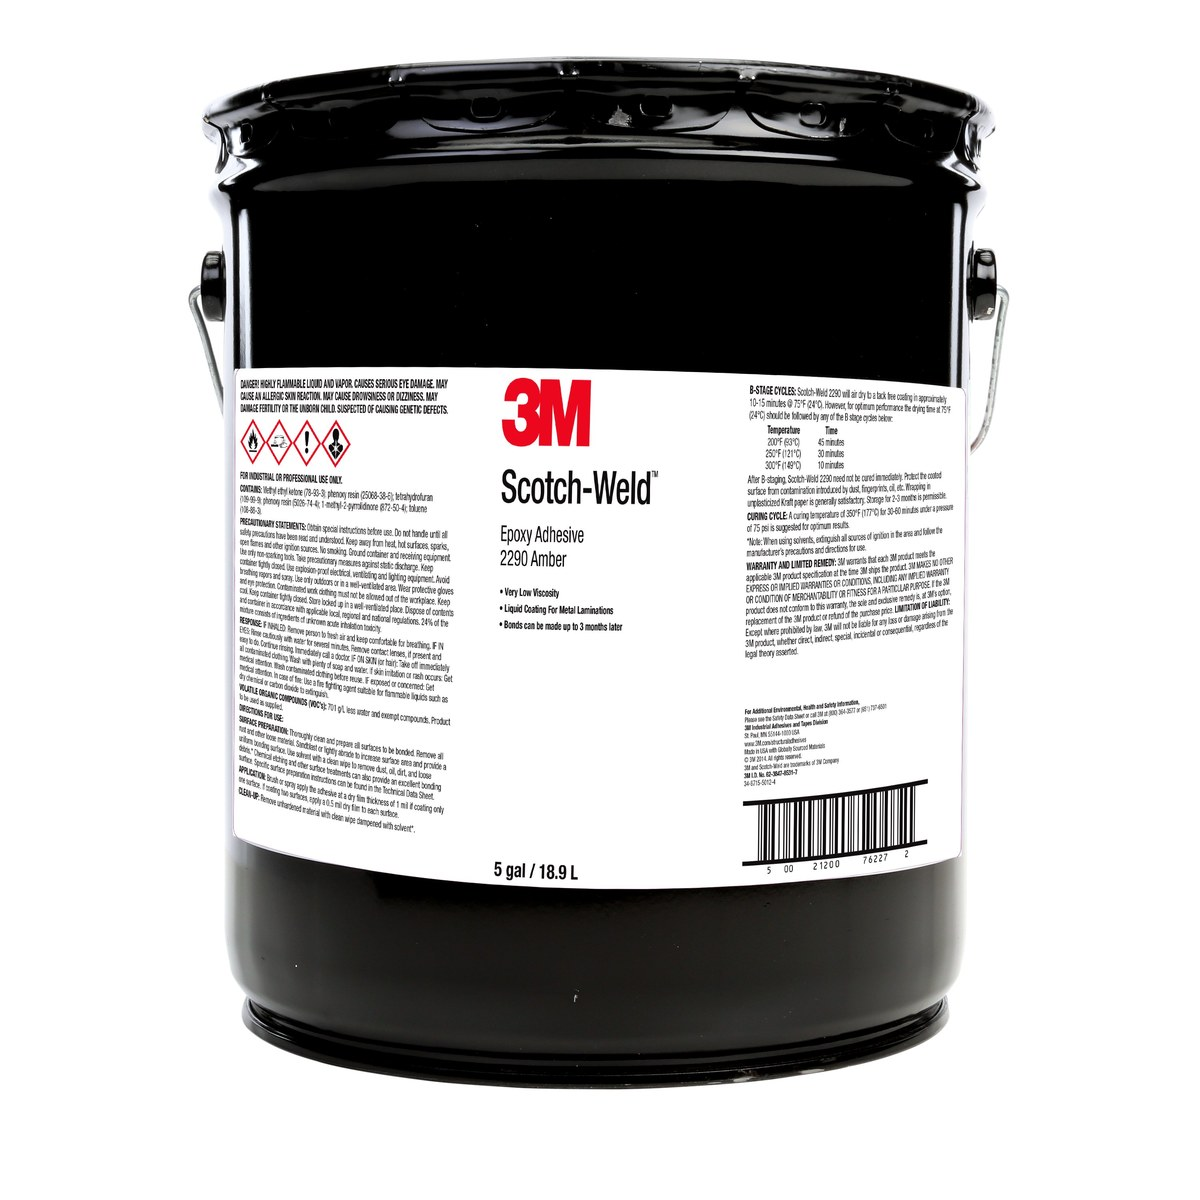 3m Scotch Weld 2290 Epoxy Adhesive 76225 1 Gal Pail Amber Uv Glue For Dvd Digital Camera Laserlenscircuit Board Bonding Buy One Part